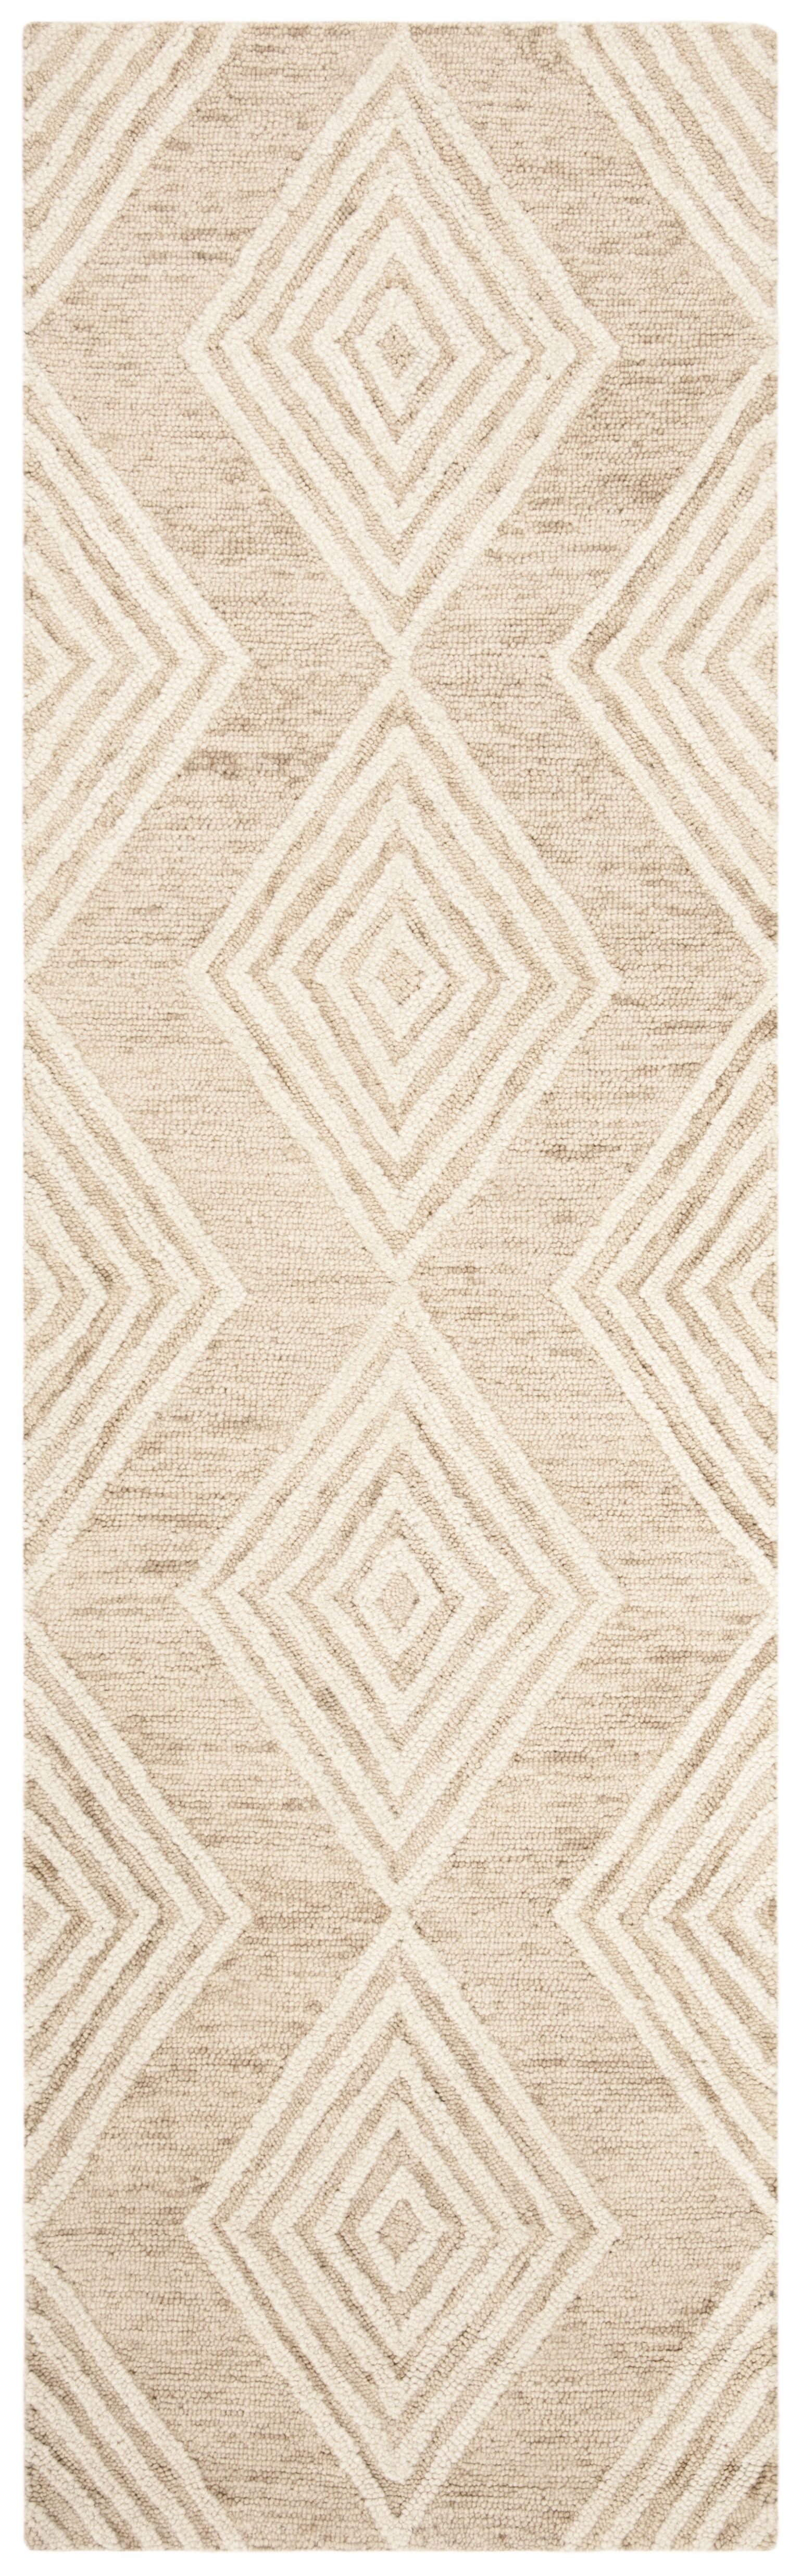 Pizano Hand-Woven Wool Beige/Ivory Area Rug Rug Size: Runner 2'3